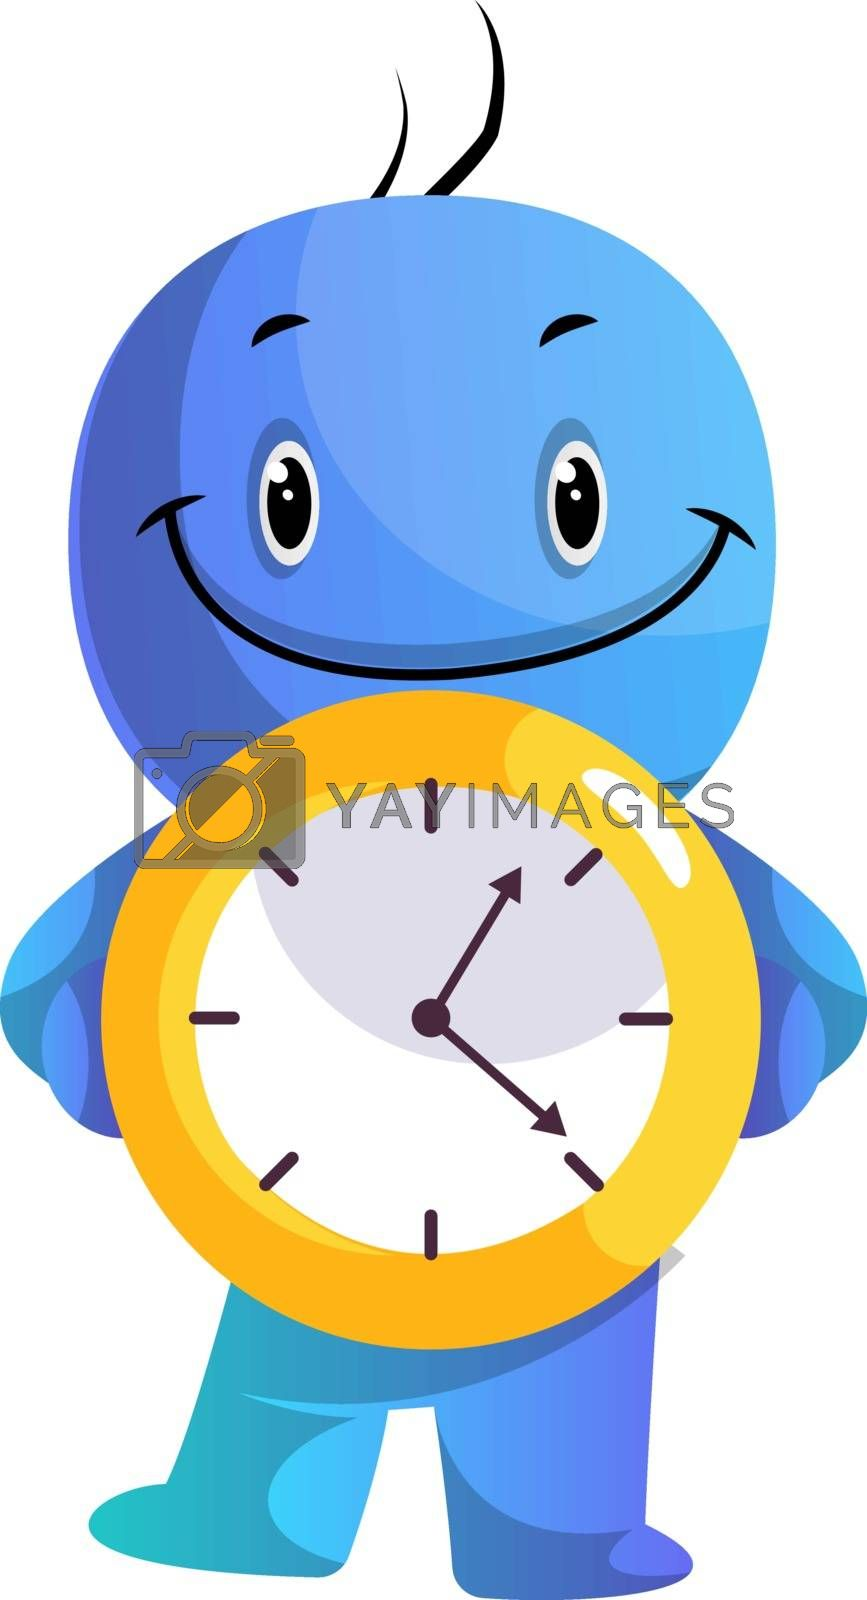 Royalty free image of Blue cartoon caracter holding yellow clock illustration vector o by Morphart